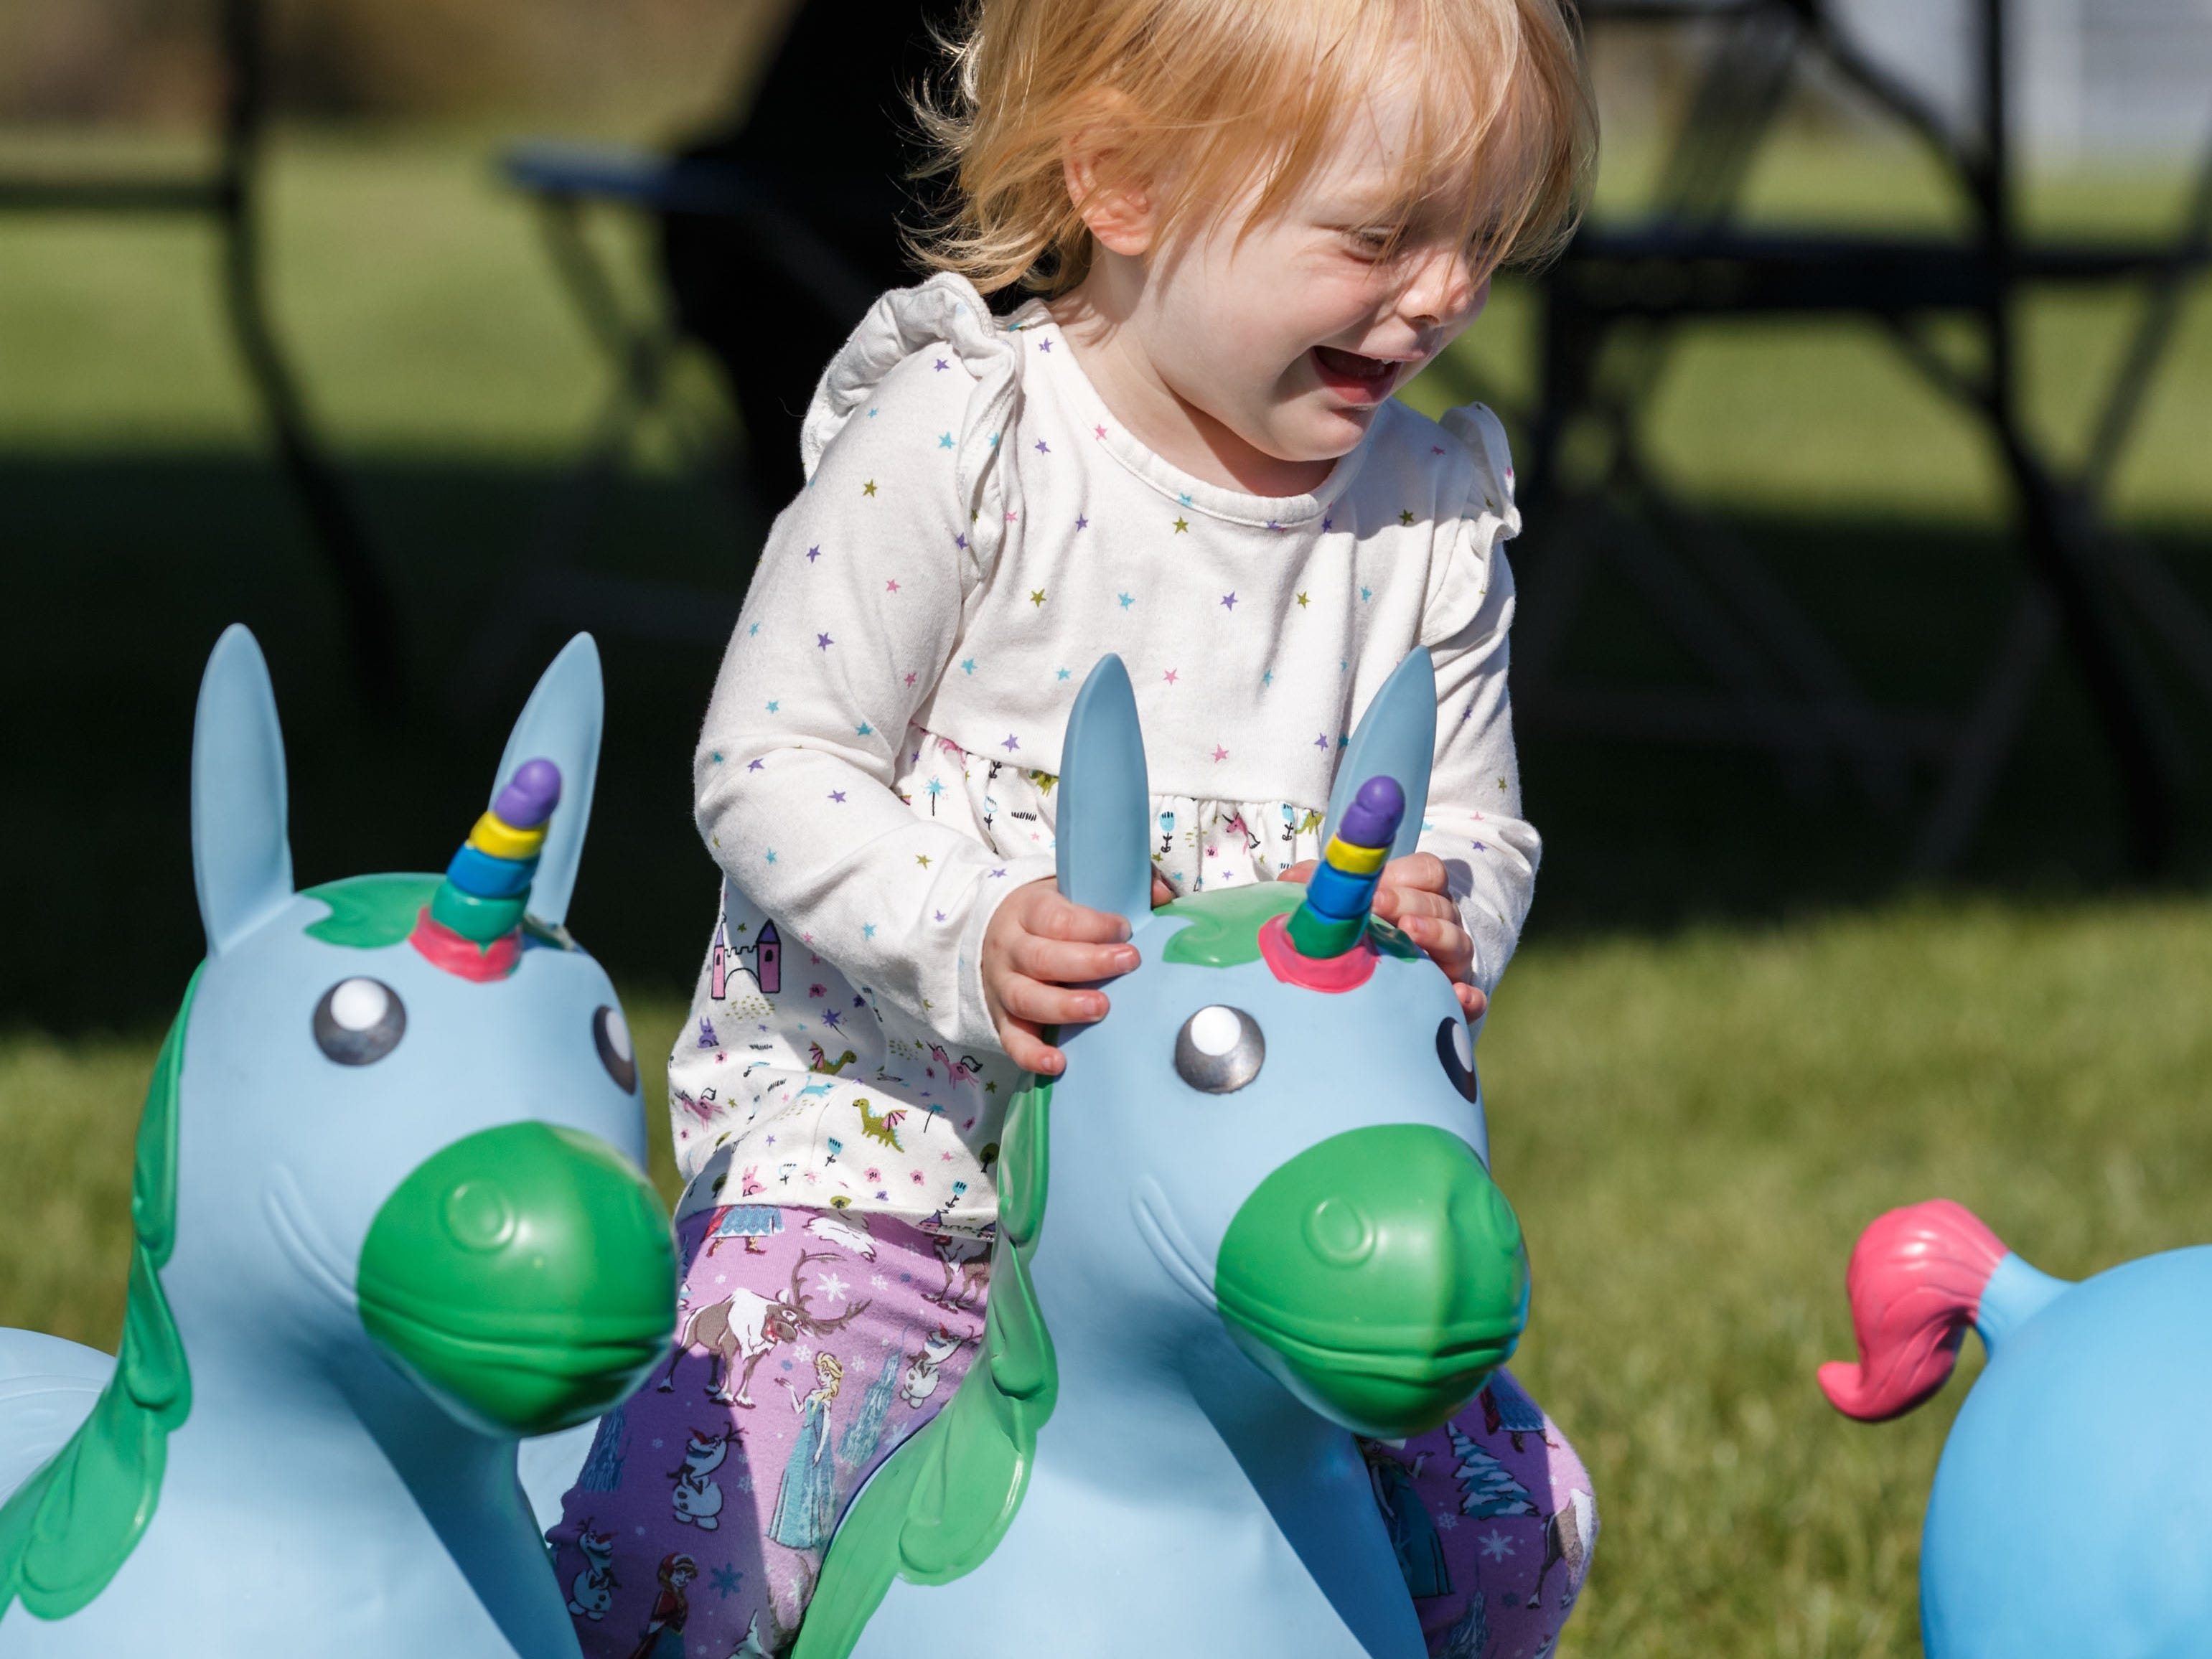 Two-year-old Evelyn Bennett of Waukesha takes a ride on a bouncy unicorn during the Midwest Magic Fest at the Waukesha Expo Center on Sunday, Sept. 23, 2018. The family friendly event featured one-of-a-kind entertainment, mythical creatures, games, crafts, vendors, unique photo-ops, costume contests and much more.